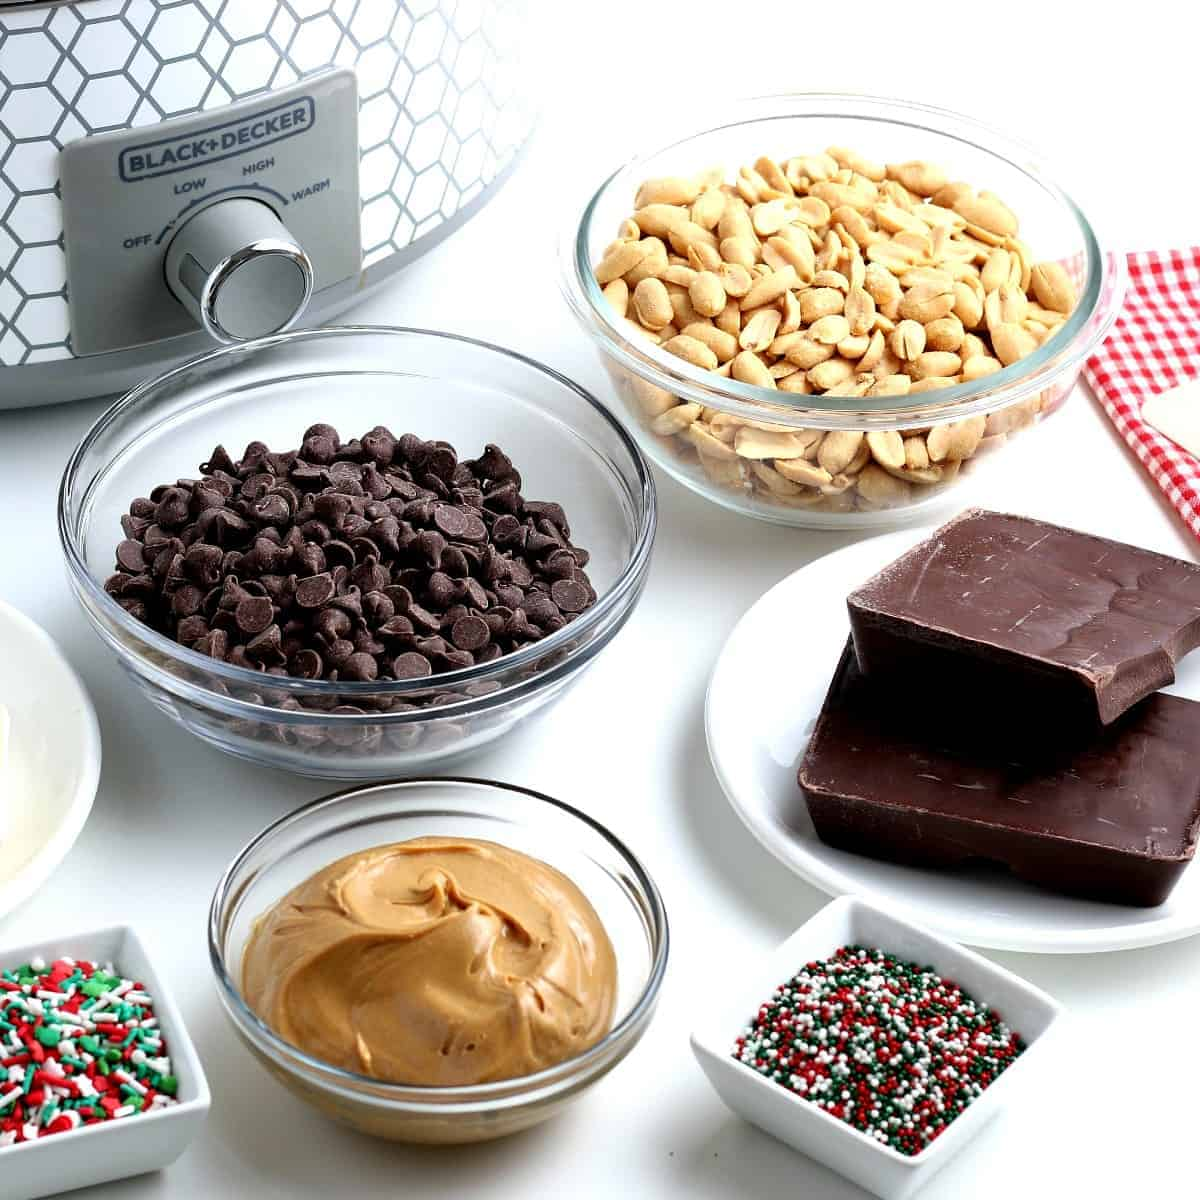 The five ingredients are sitting in front of a crock pot along with sprinkles.